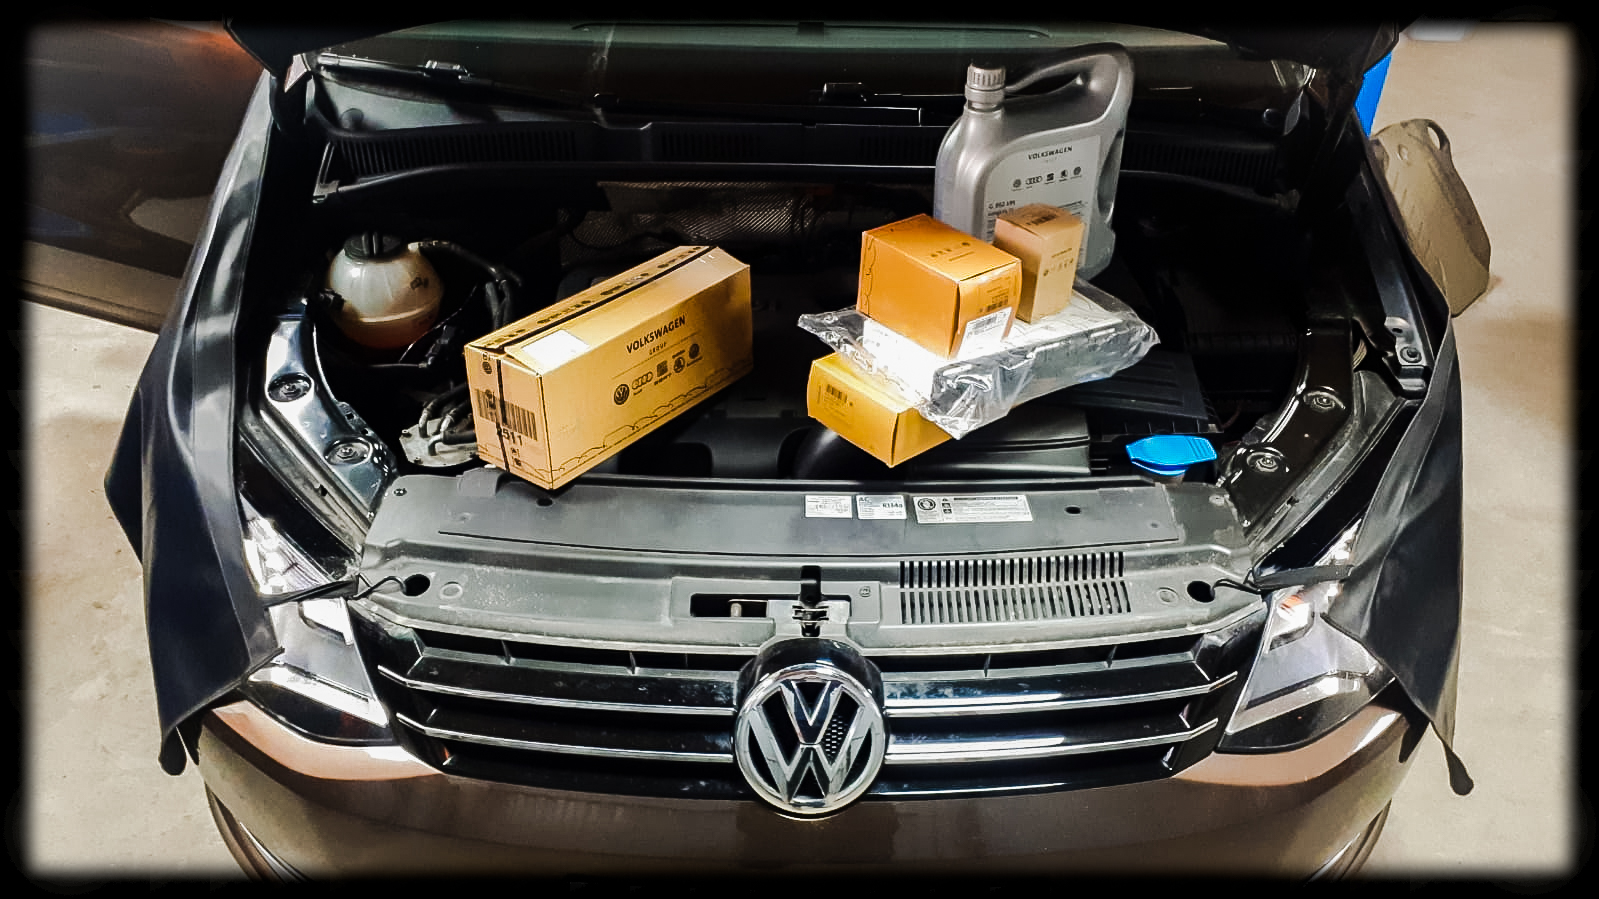 kit distributie si revizie vw sharan